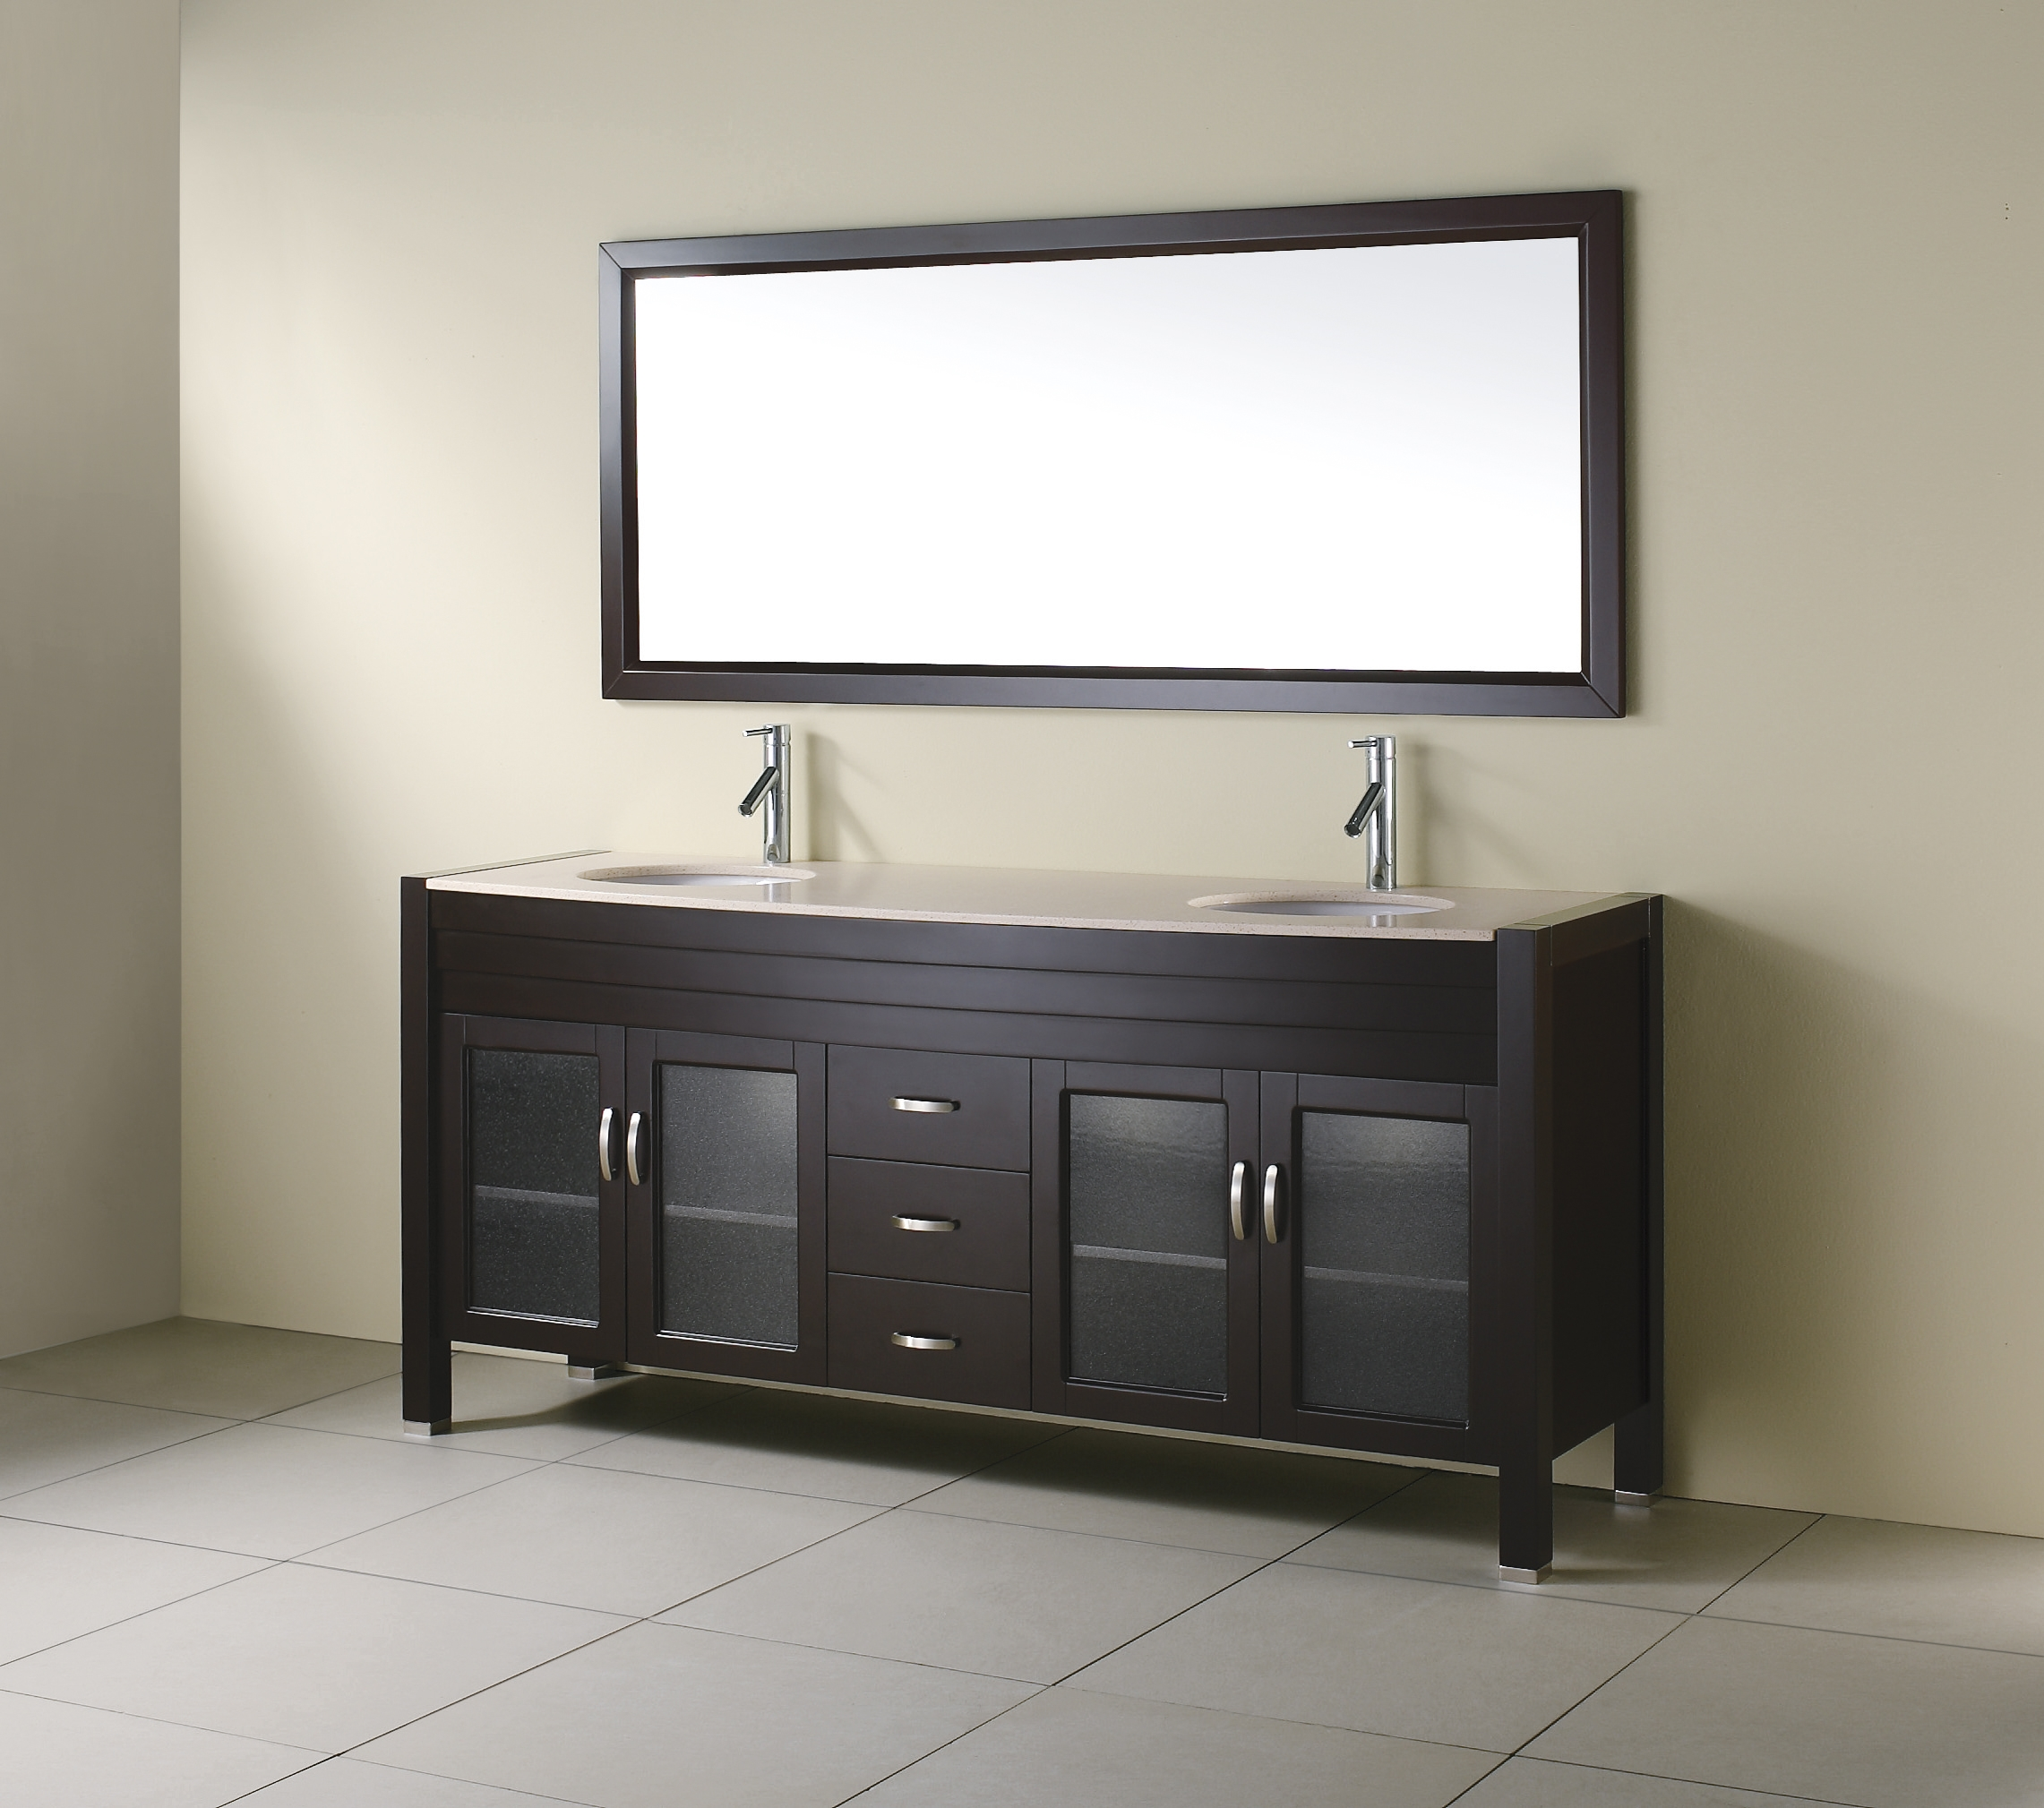 Contemporary Bathroom Cabinet Doors